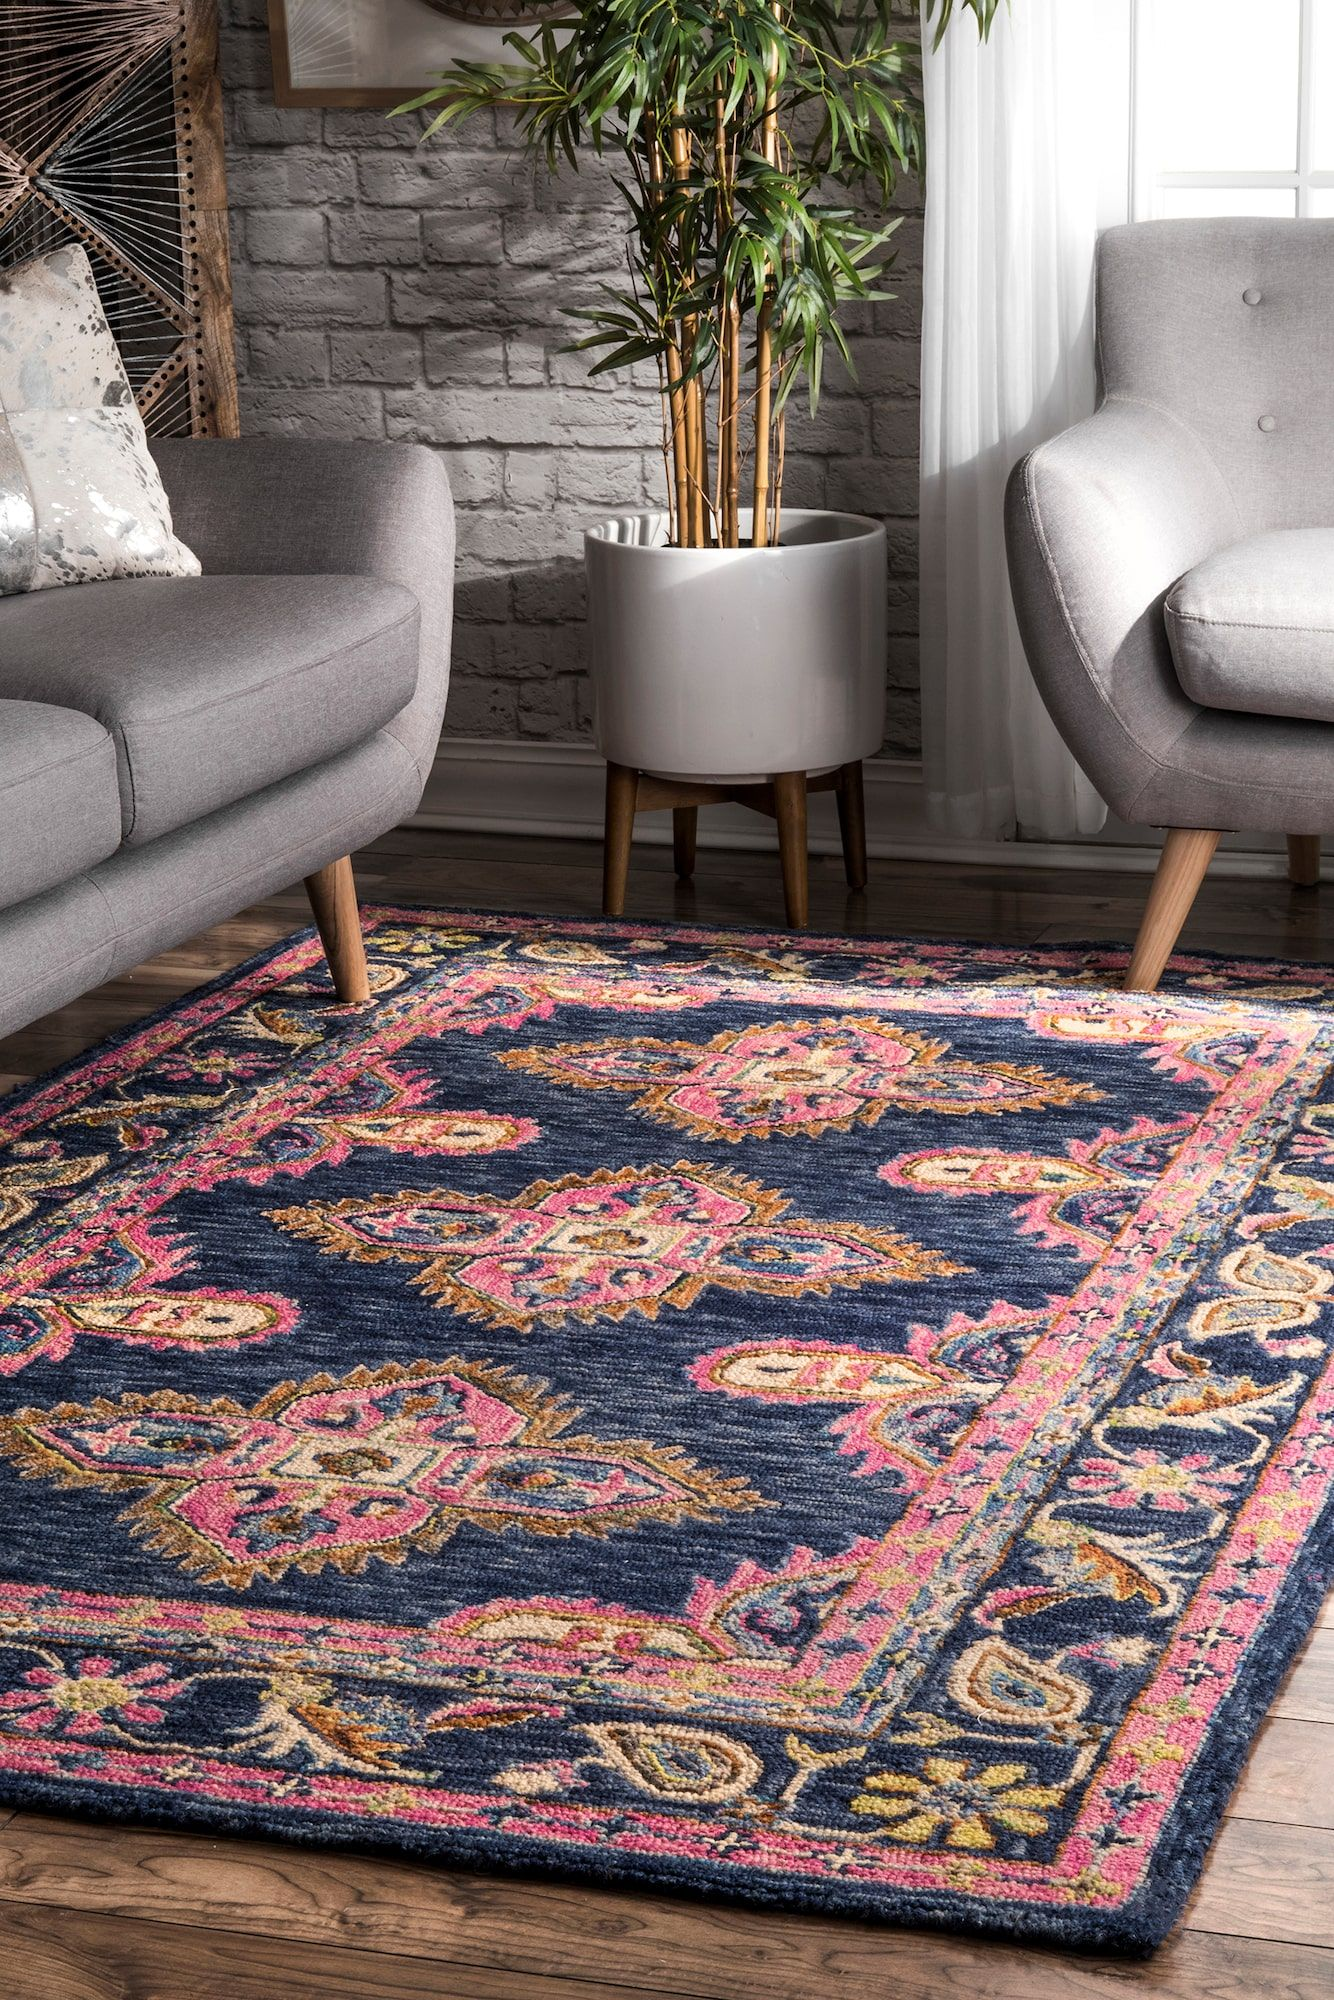 22 Reasons You Need to Invest in a Moroccan RugNow pictures